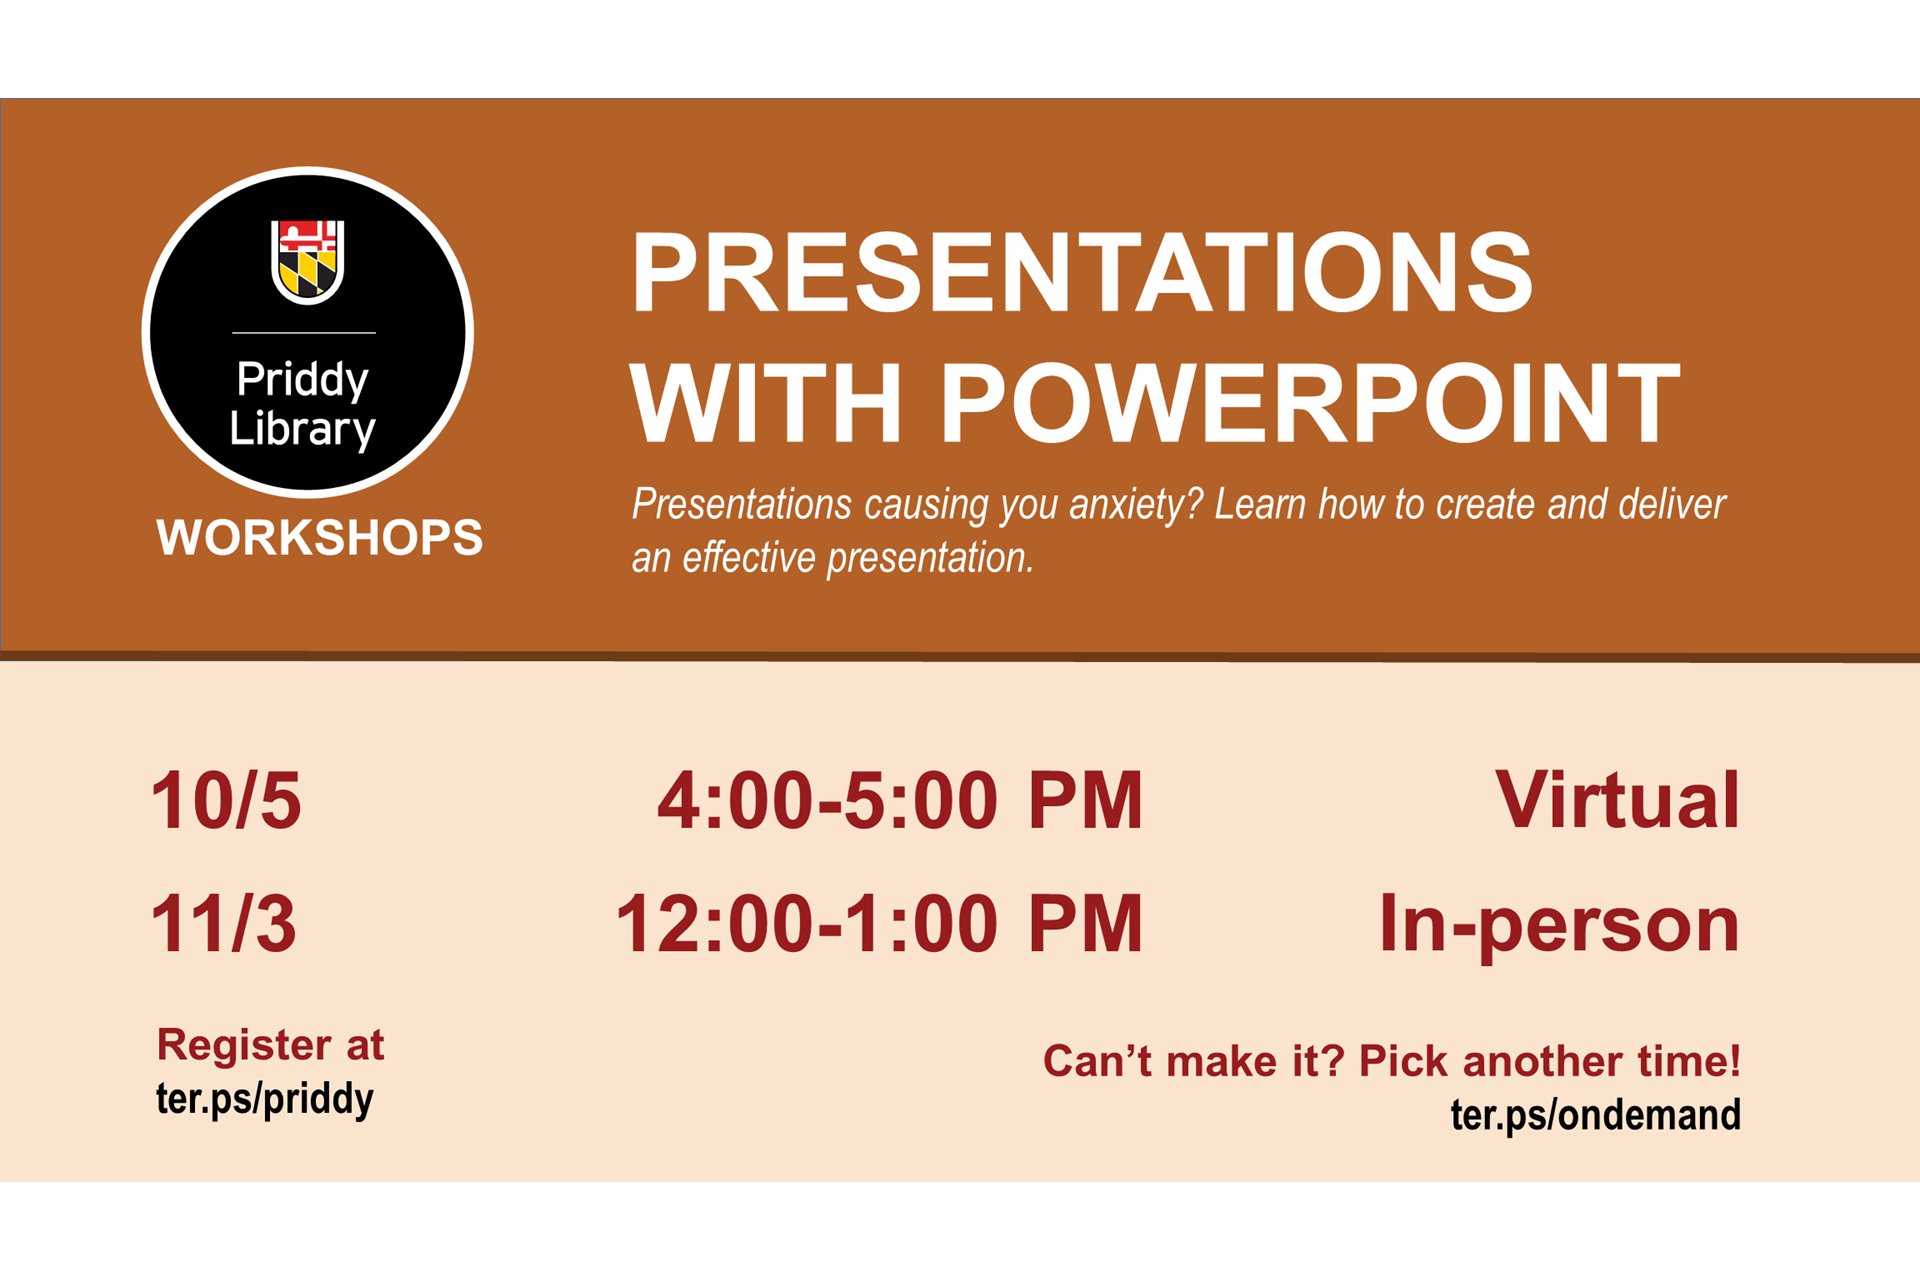 Presentations with PowerPoint workshop flyer